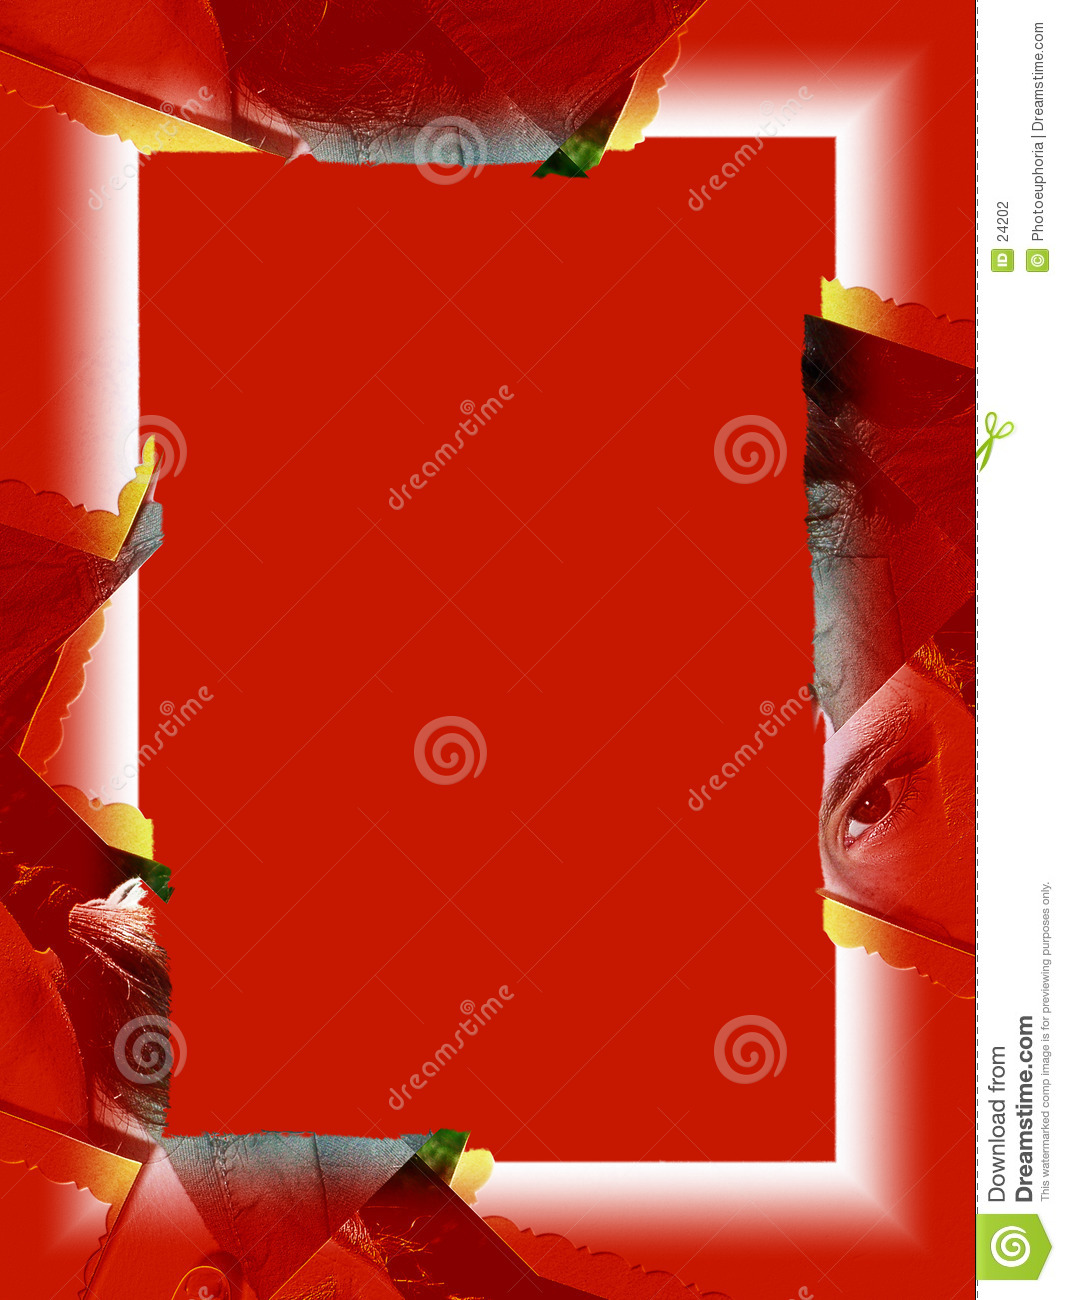 Rand: Rotes Auge